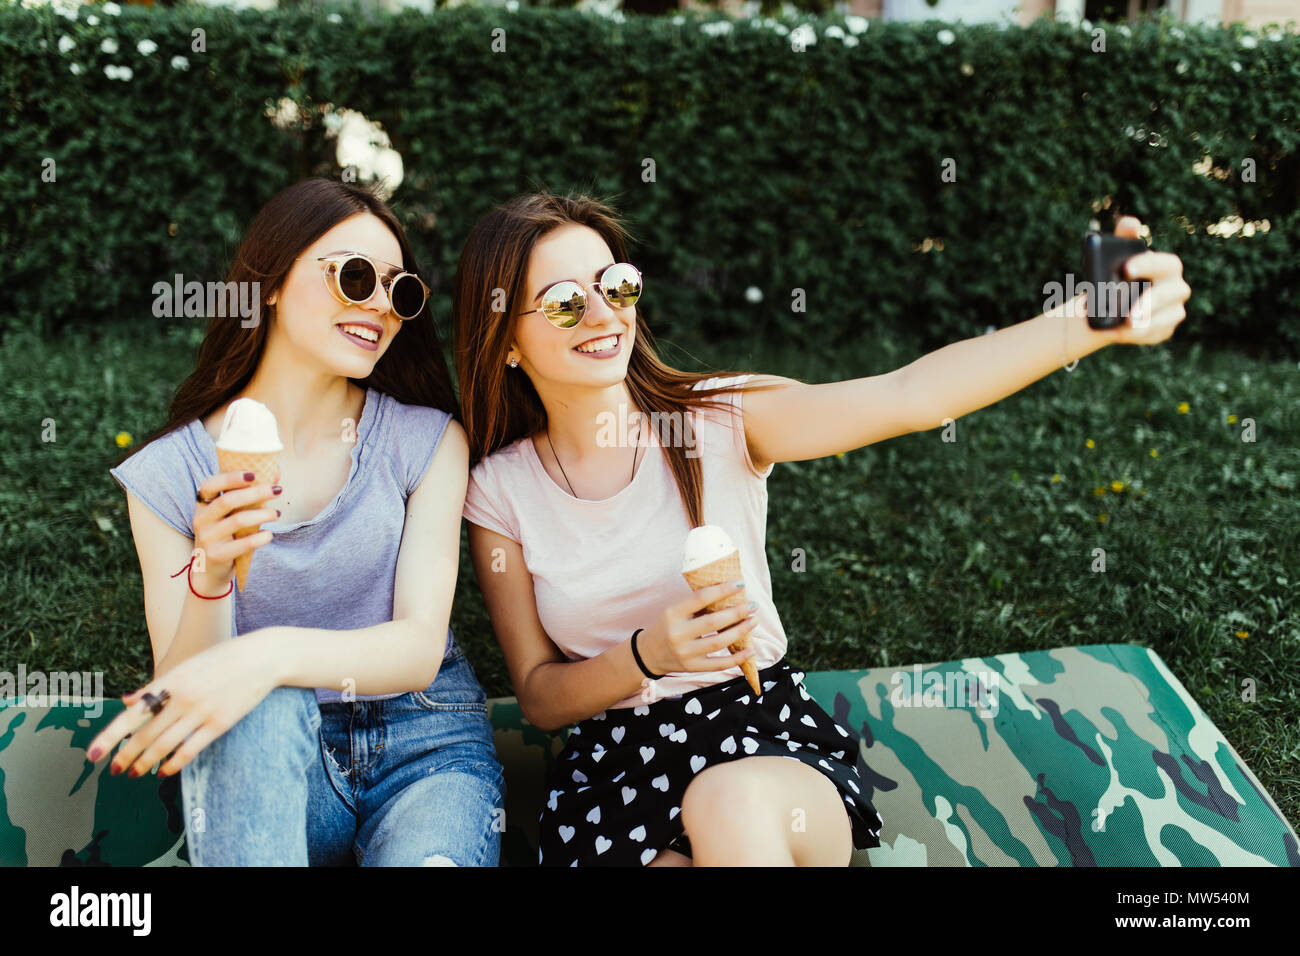 Portrait of two young women standing together eating ice cream and taking selfie photo on camera in summer street. Stock Photo